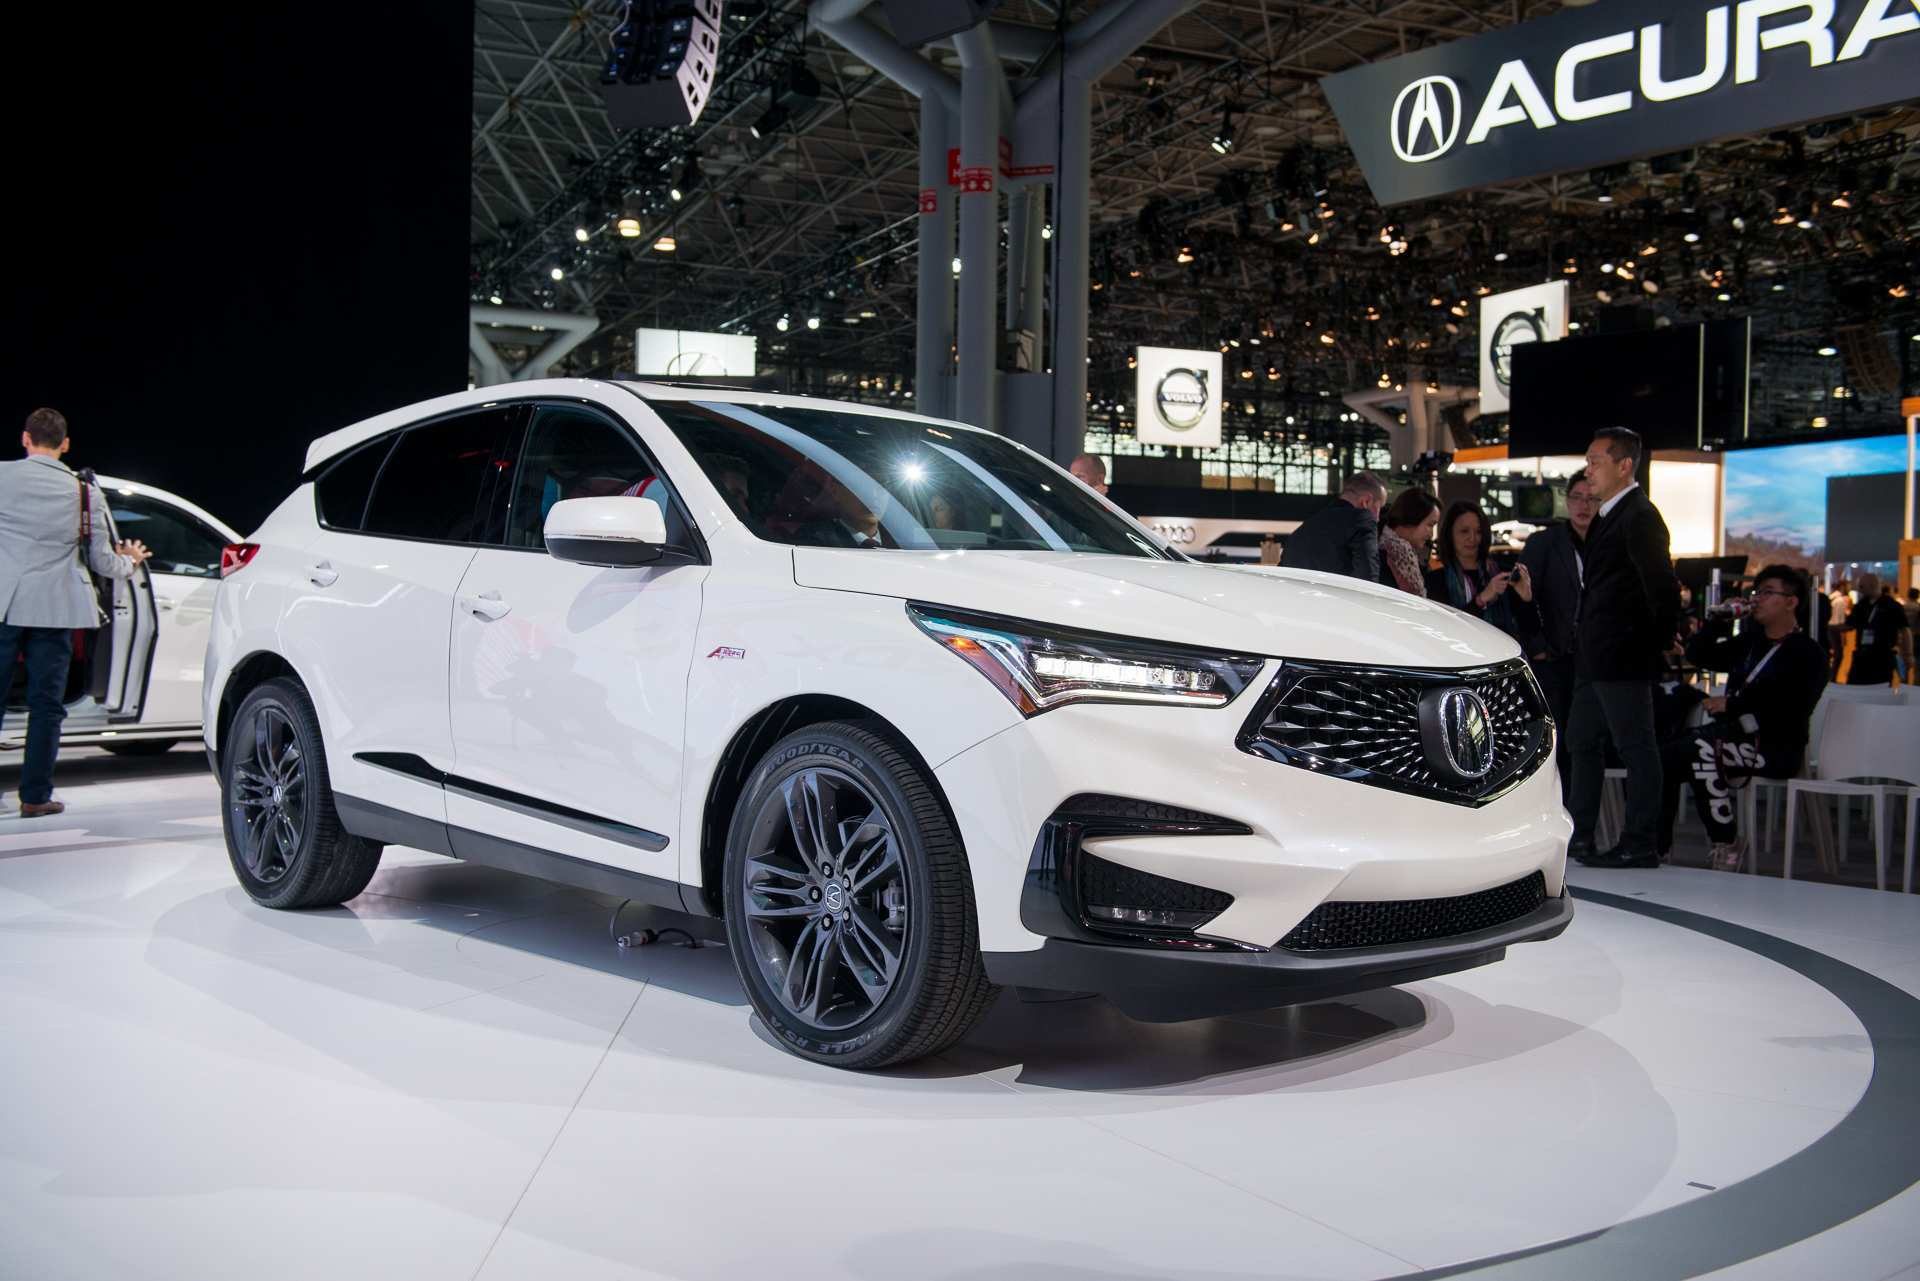 88 Gallery of 2019 Acura Rdx Images Release Date with 2019 Acura Rdx Images